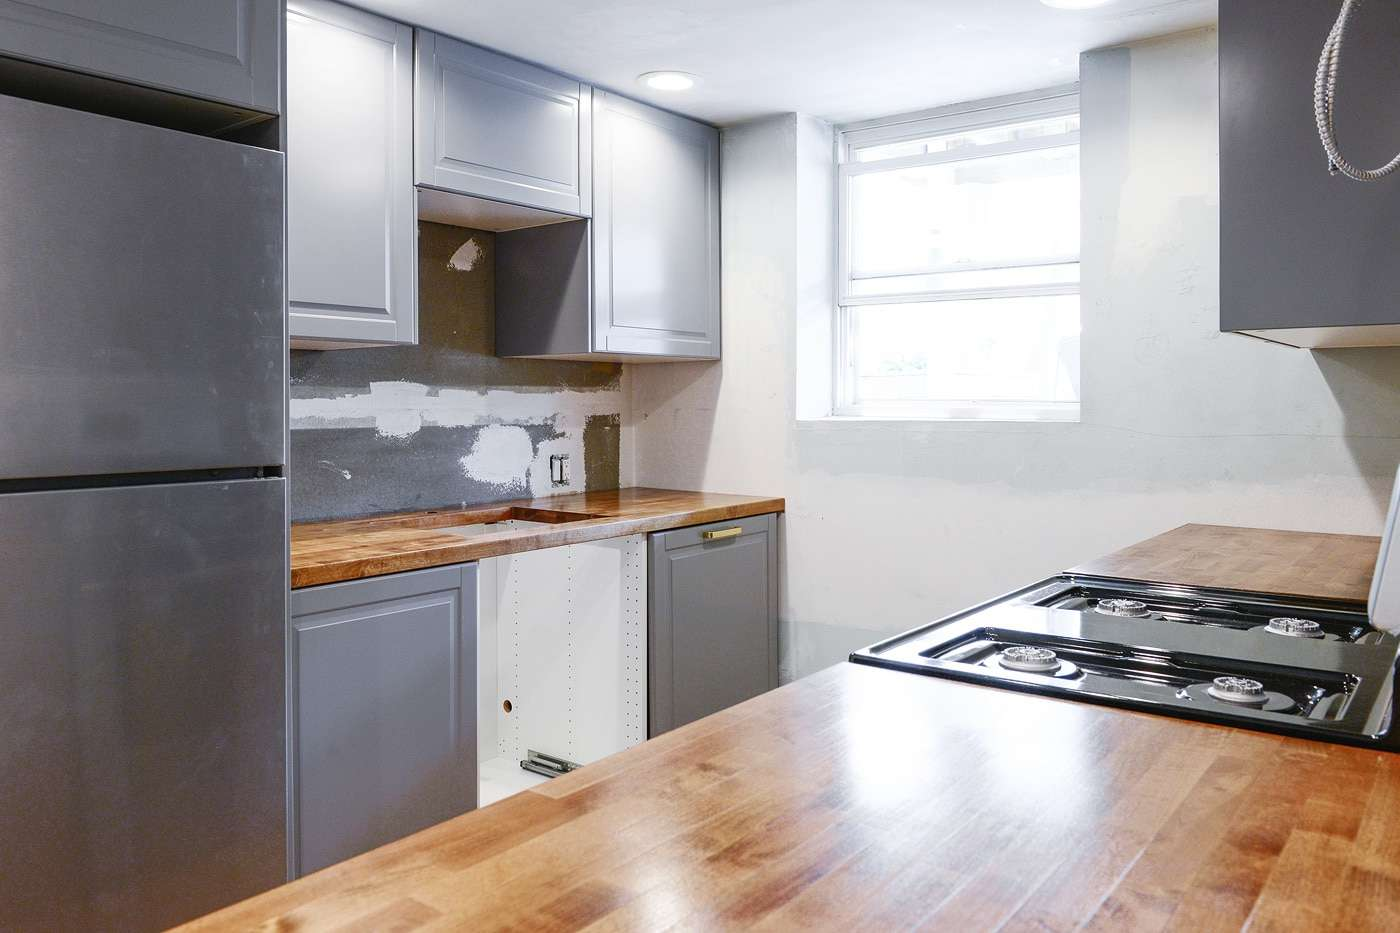 A kitchen reno with wood countertops